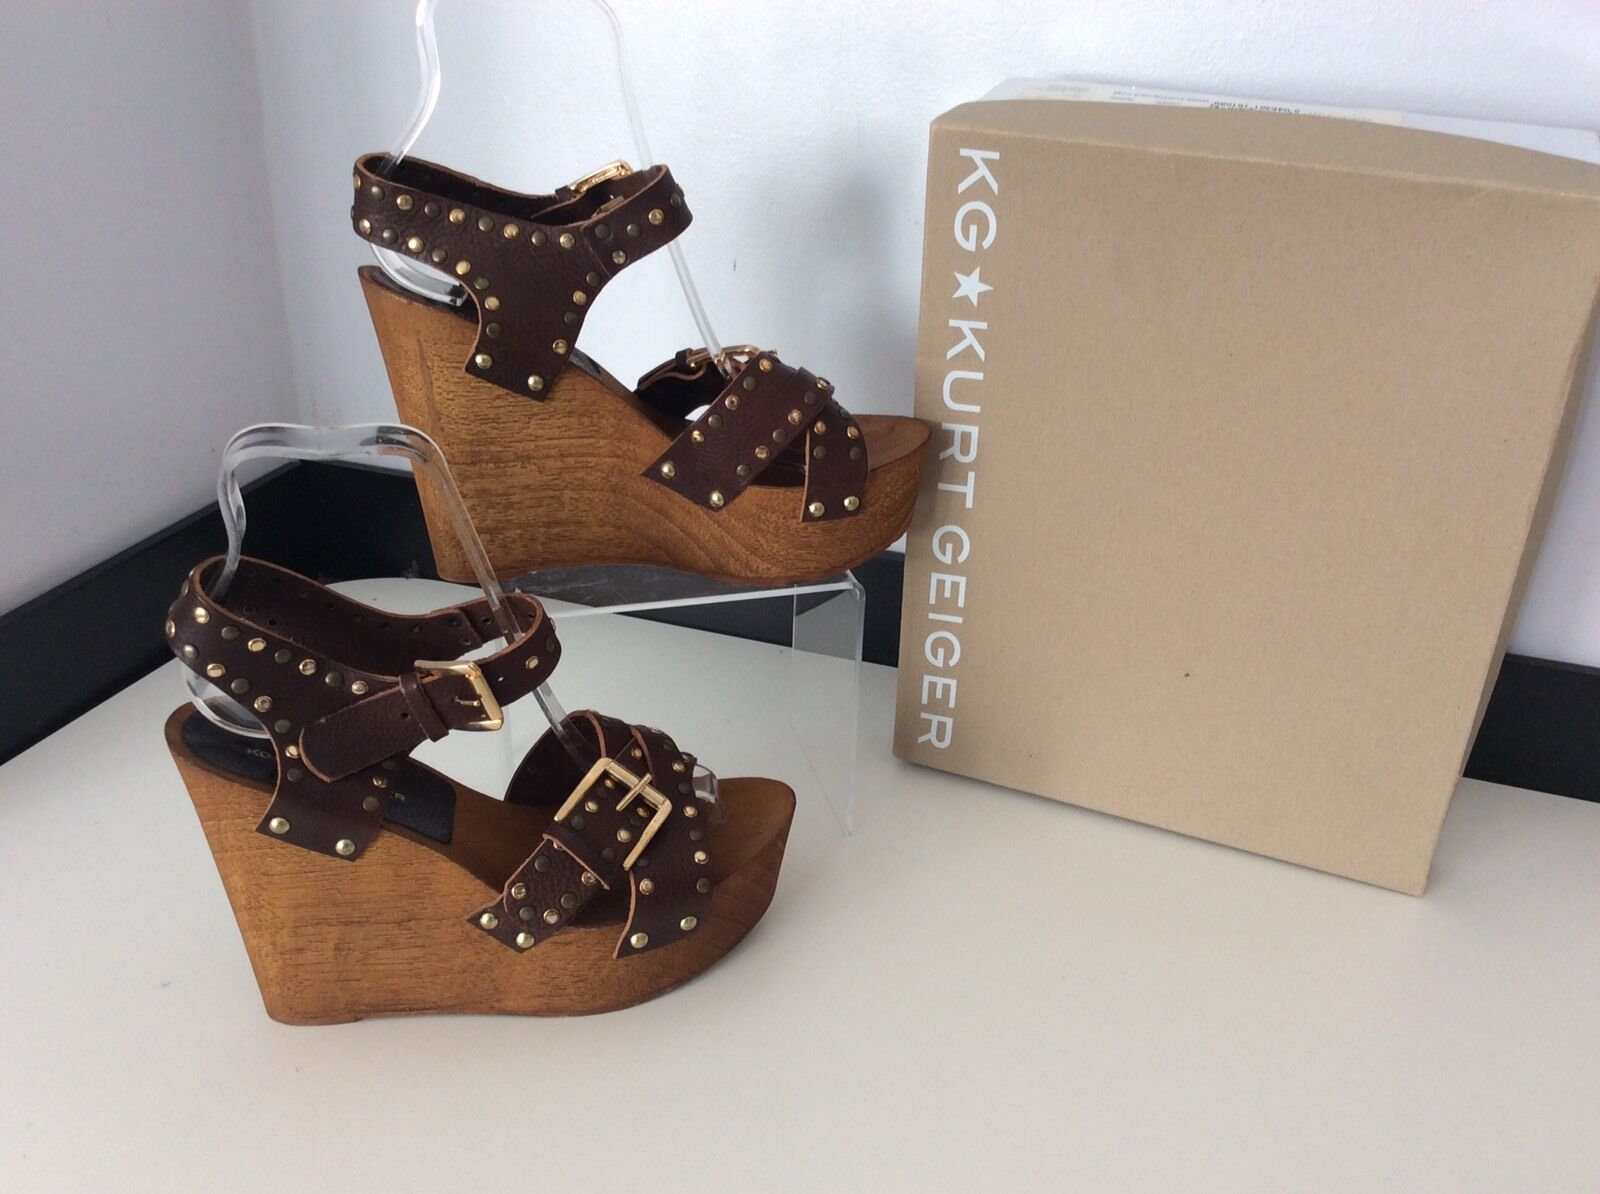 KURT GEIGER Kg NICKLE NEW braun wedge wedge wedge schuhe Peep Toe Größe 38 Uk 5 Boxed Rrp 79d20d